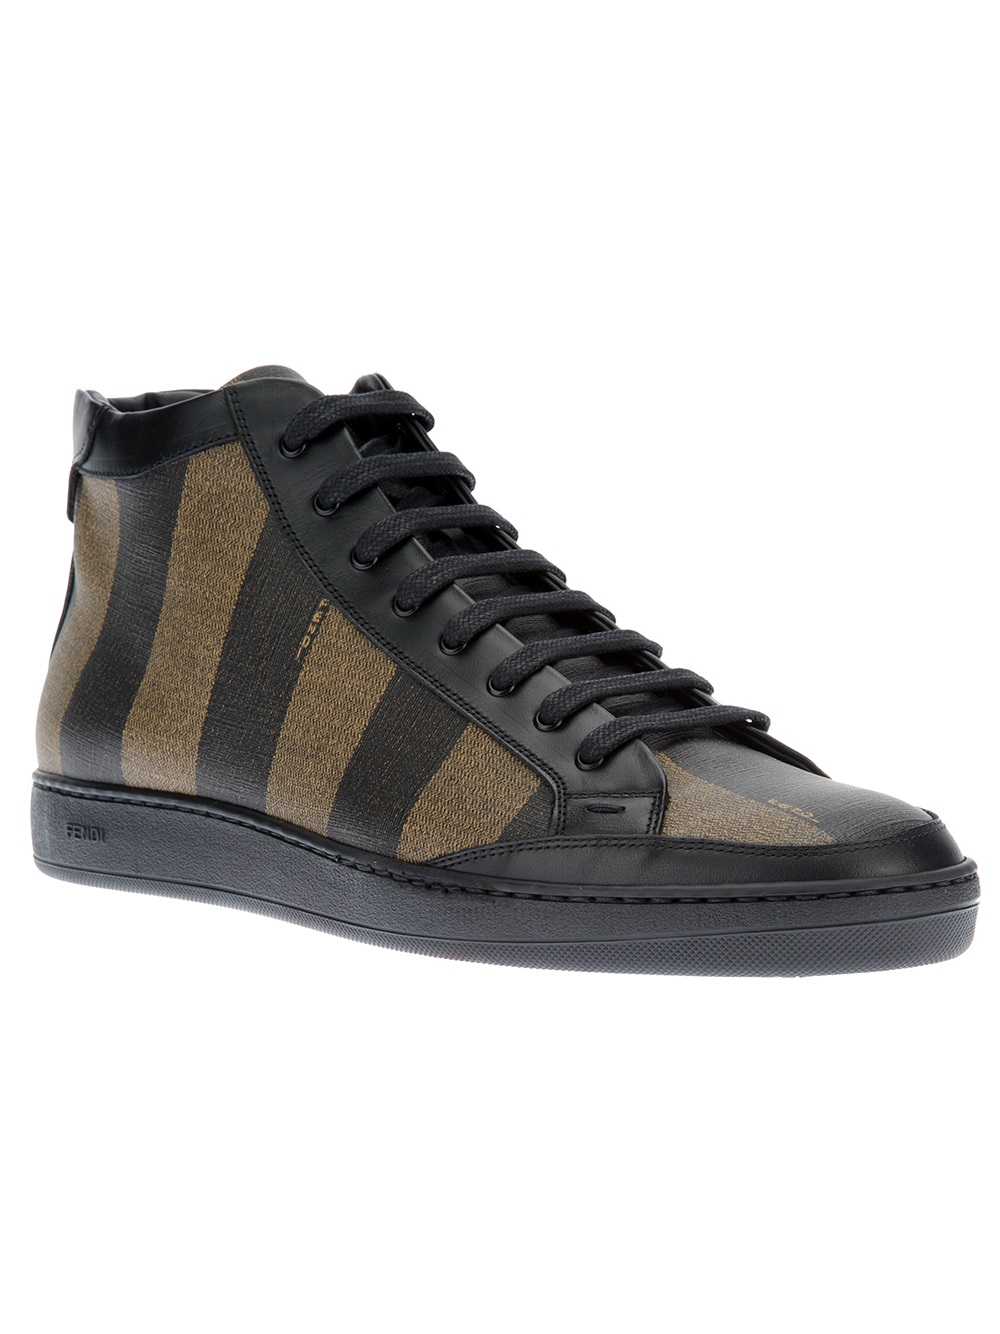 Lyst - Fendi Striped Laceup Sneaker in Black for Men